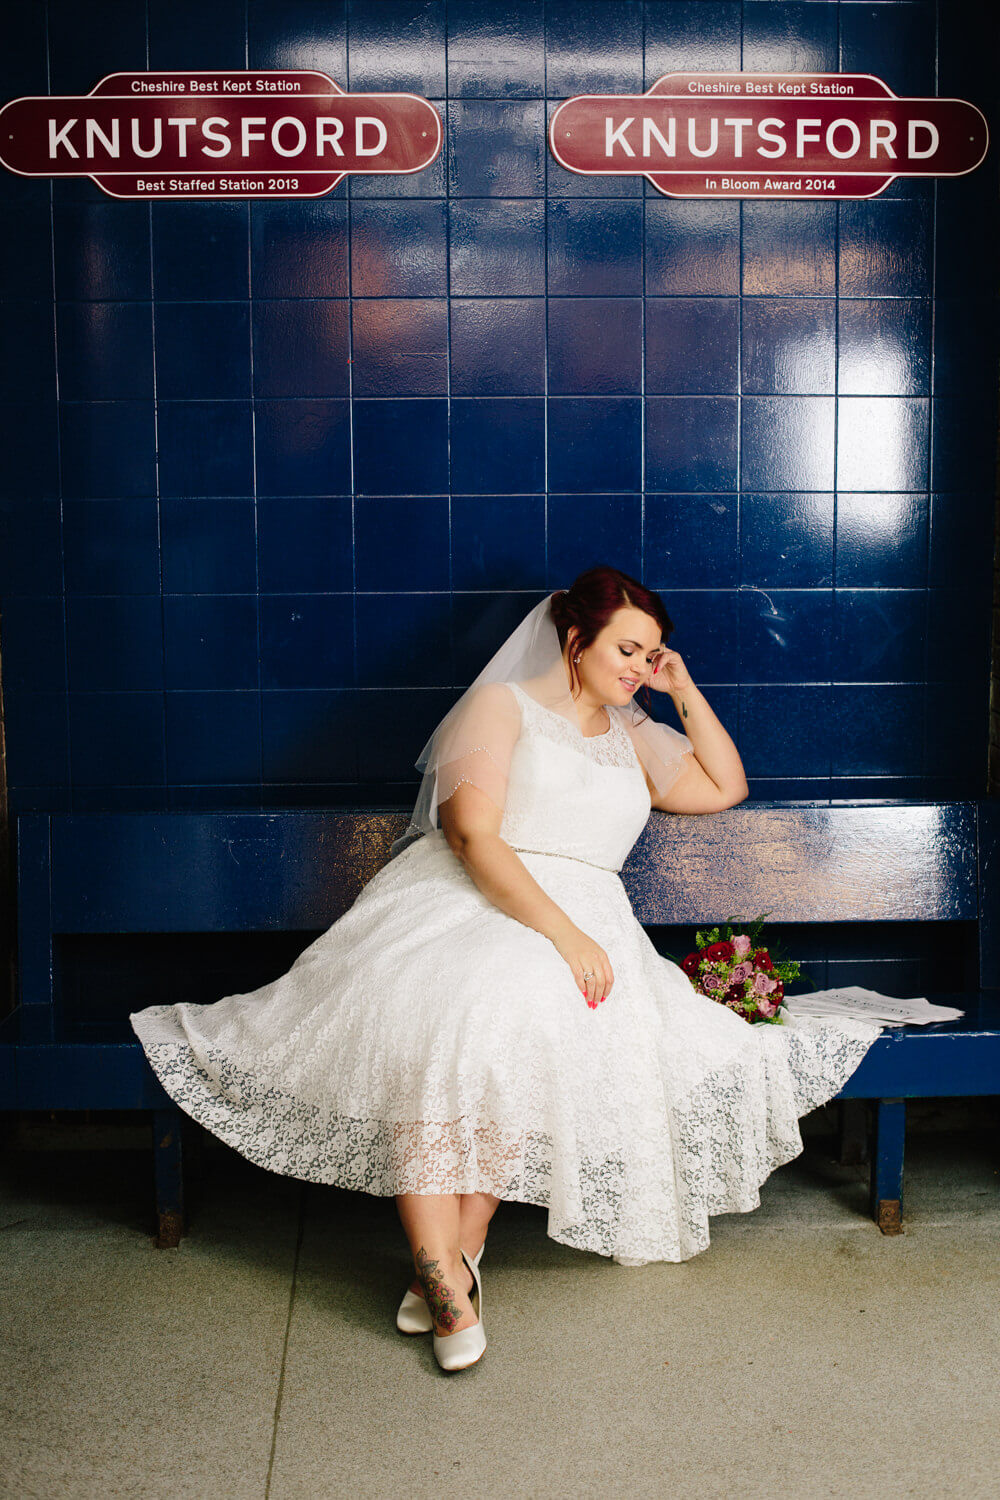 MANCHESTER WEDDING PHOTOGRAPHER STEPHEN MCGOWAN 22.jpeg